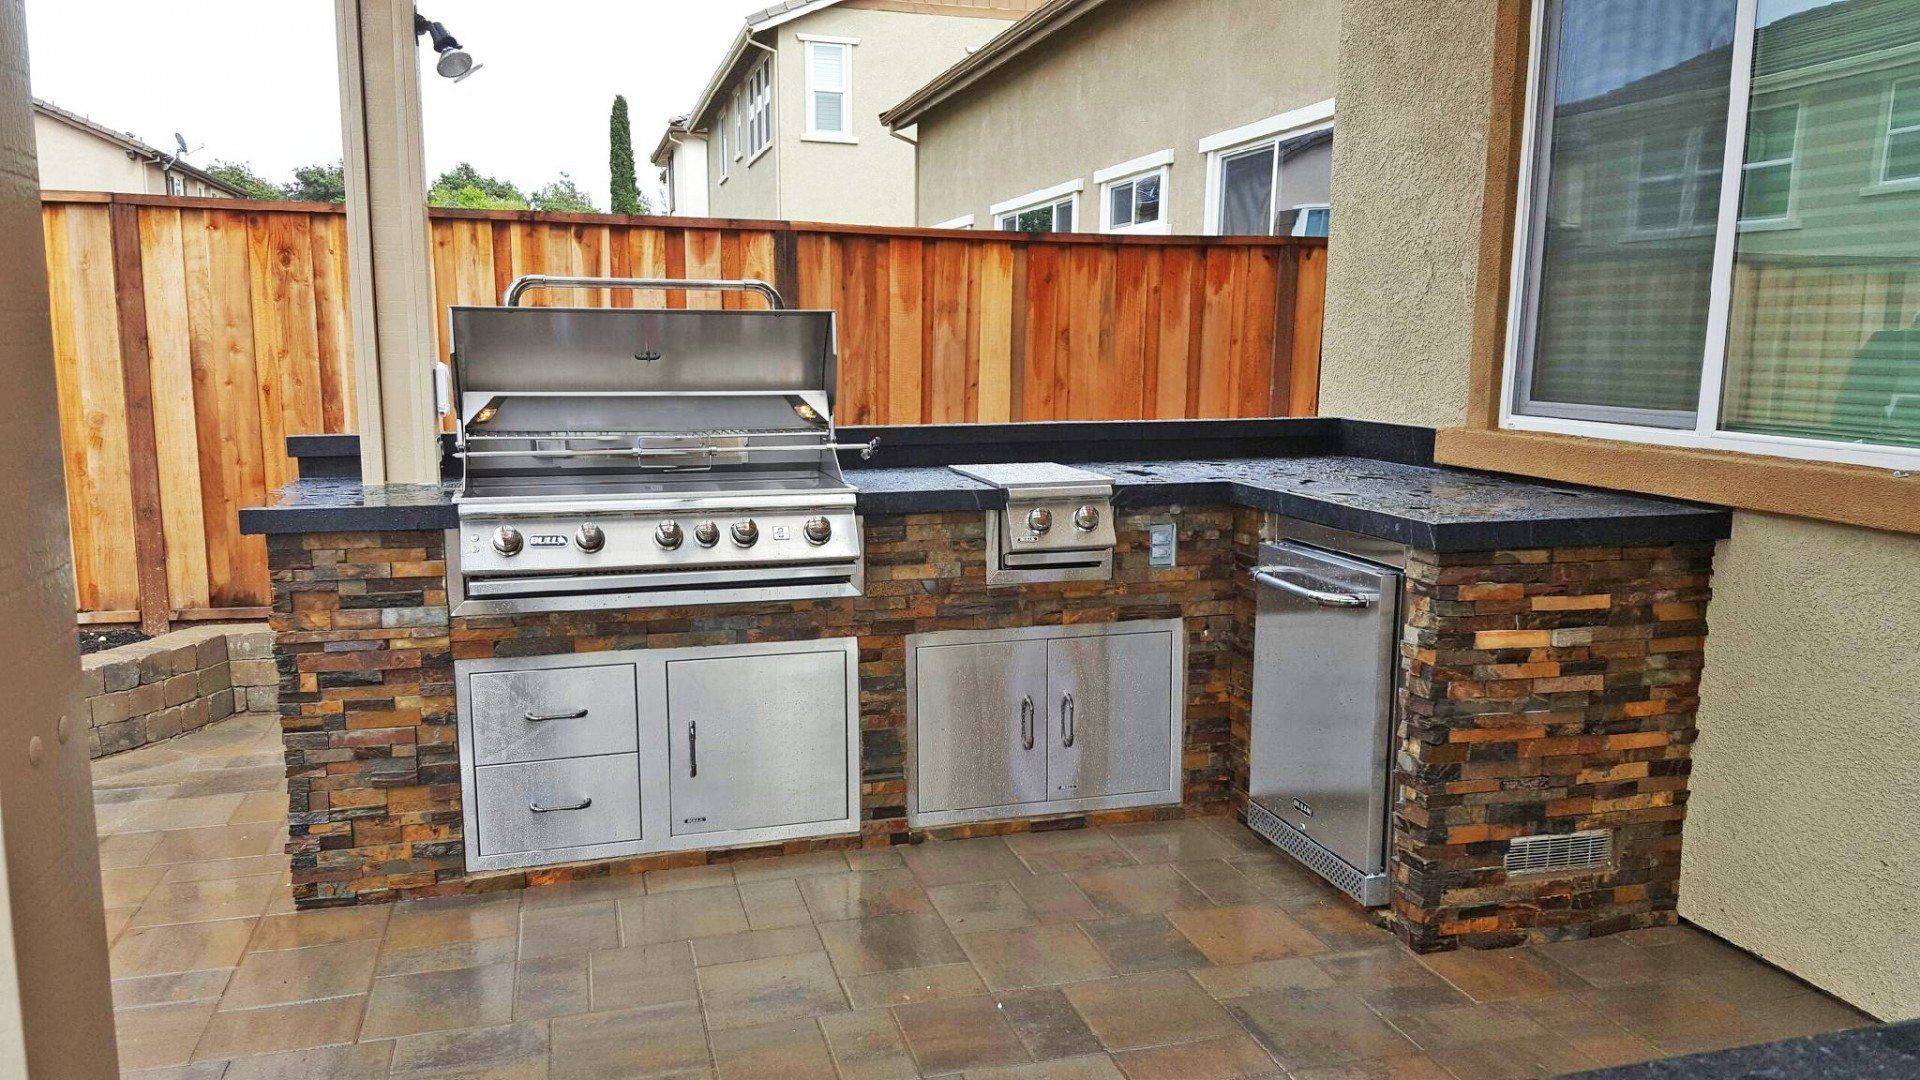 New 16 outdoor grill island plans in 2020 | Outdoor grill ...